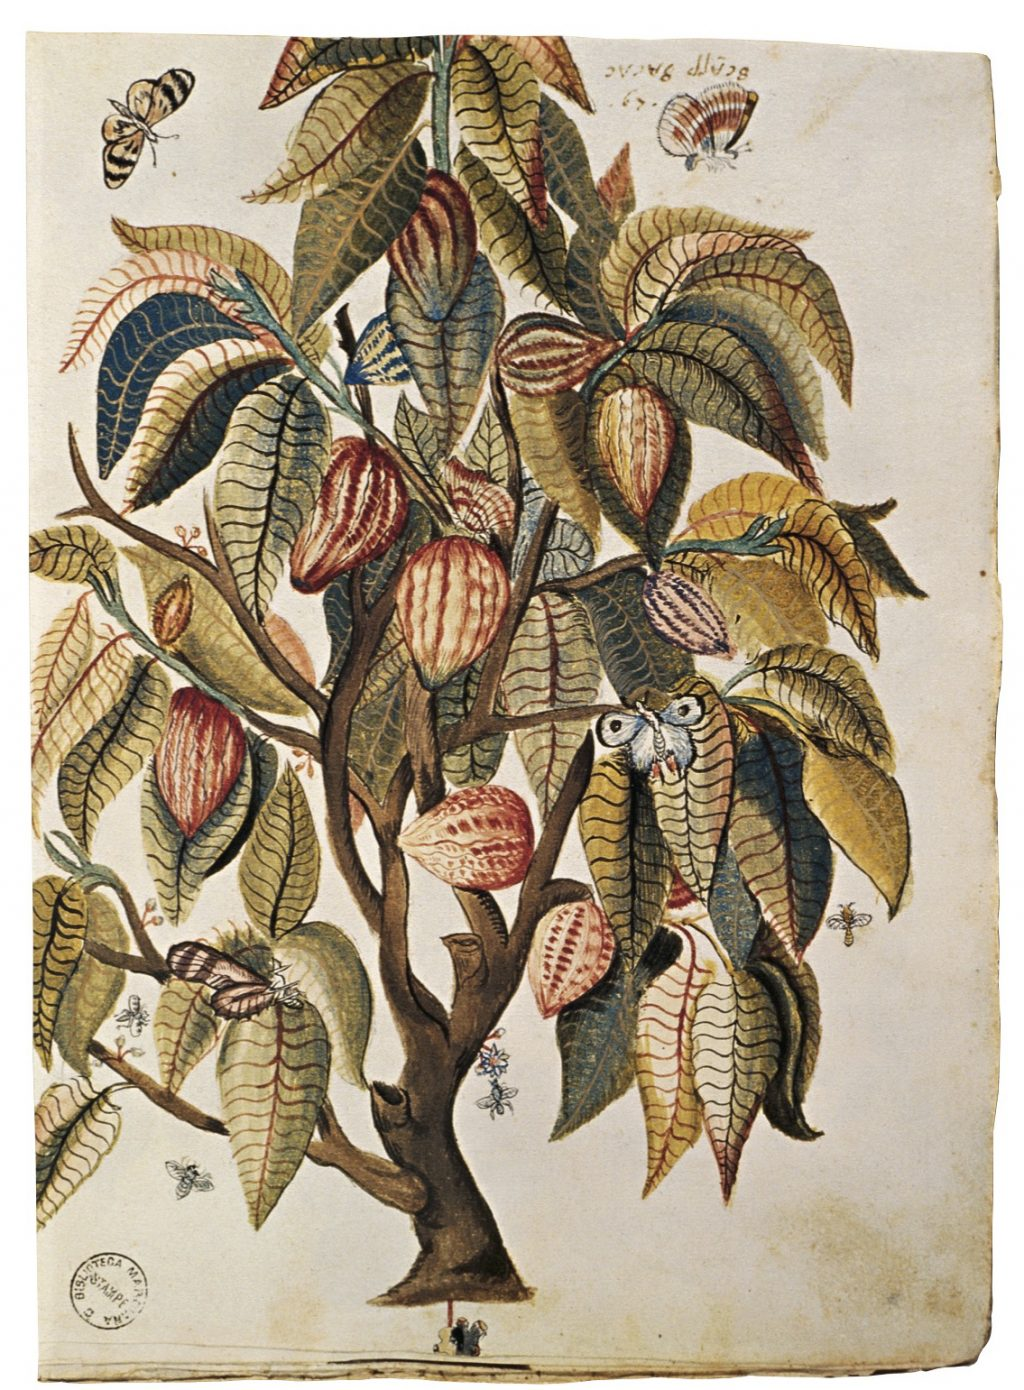 Erbolario's plant illustration